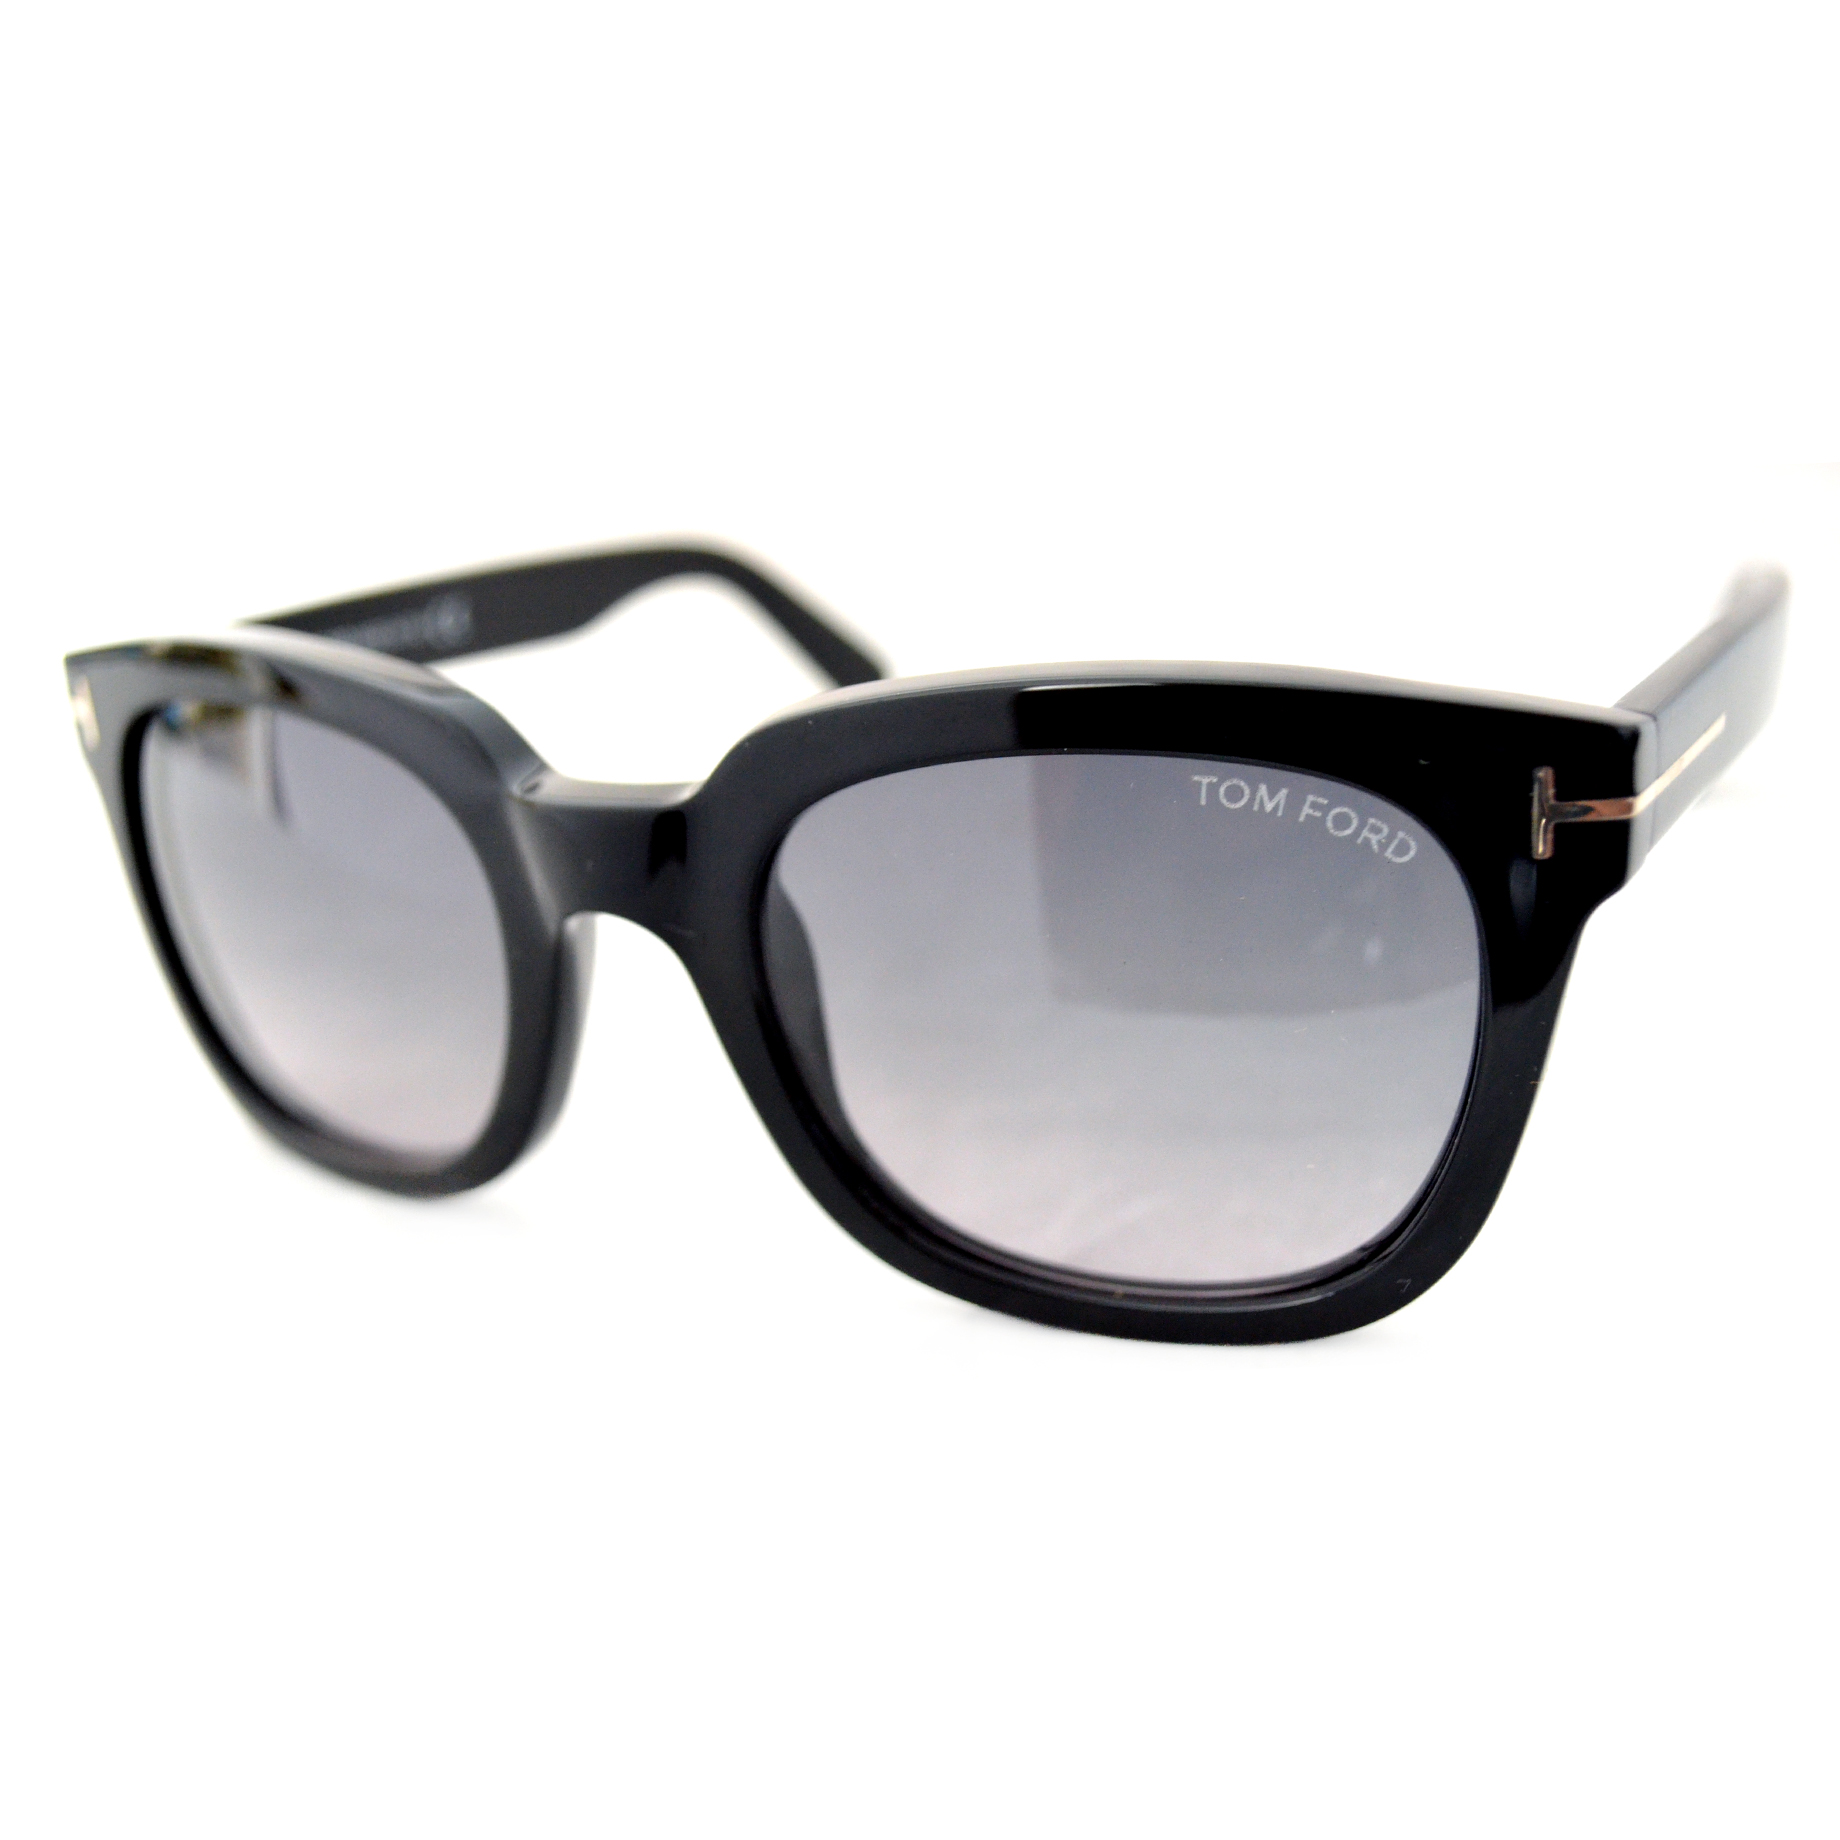 26d7320421 Tom ford tom ford campbell sunglasses color shiny black jpeg 450x450 Color  01b